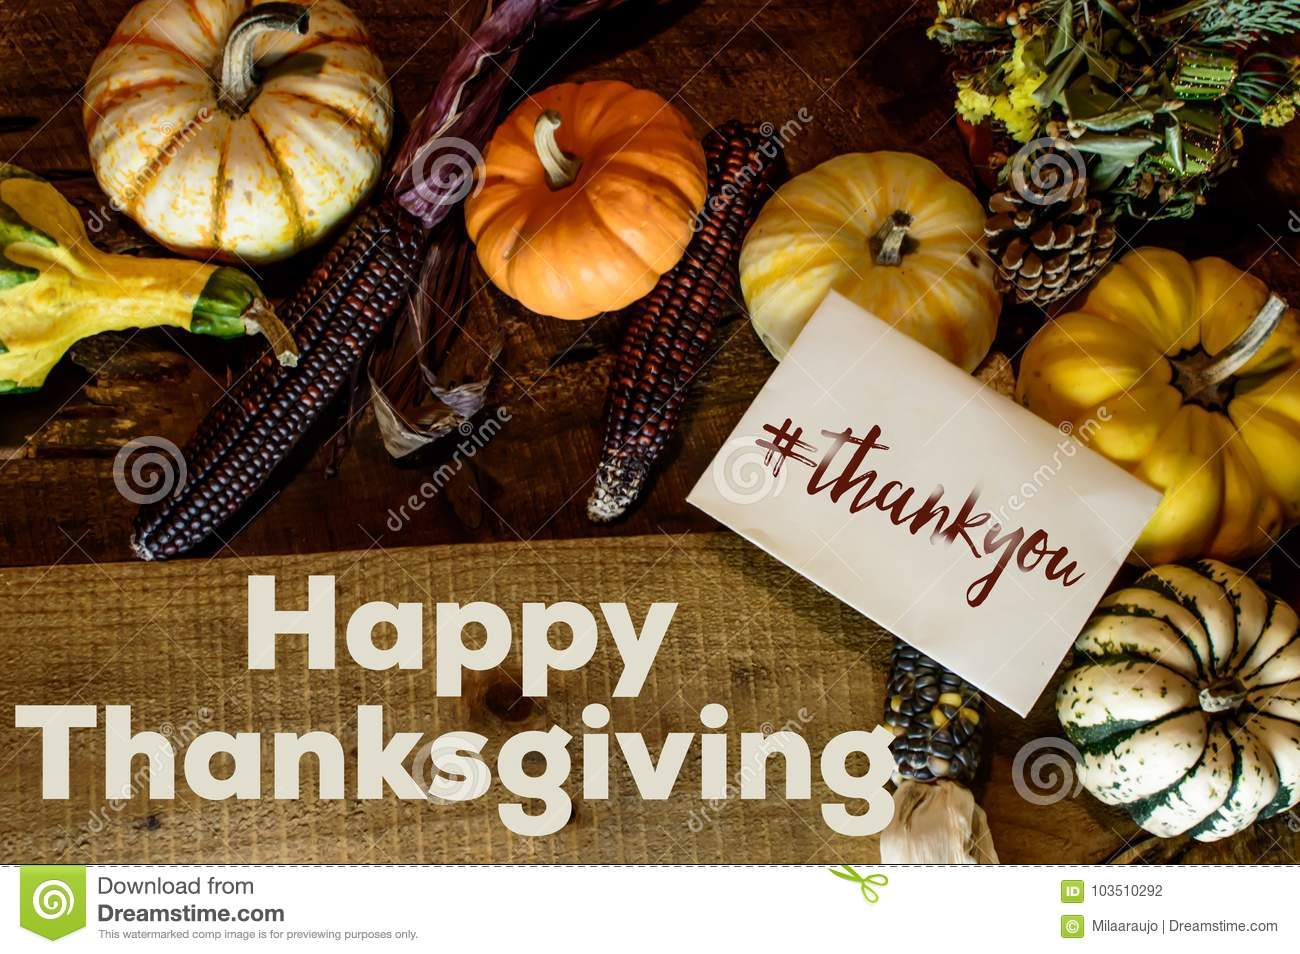 happy thanksgiving day card writing thank you with hashtag social share image